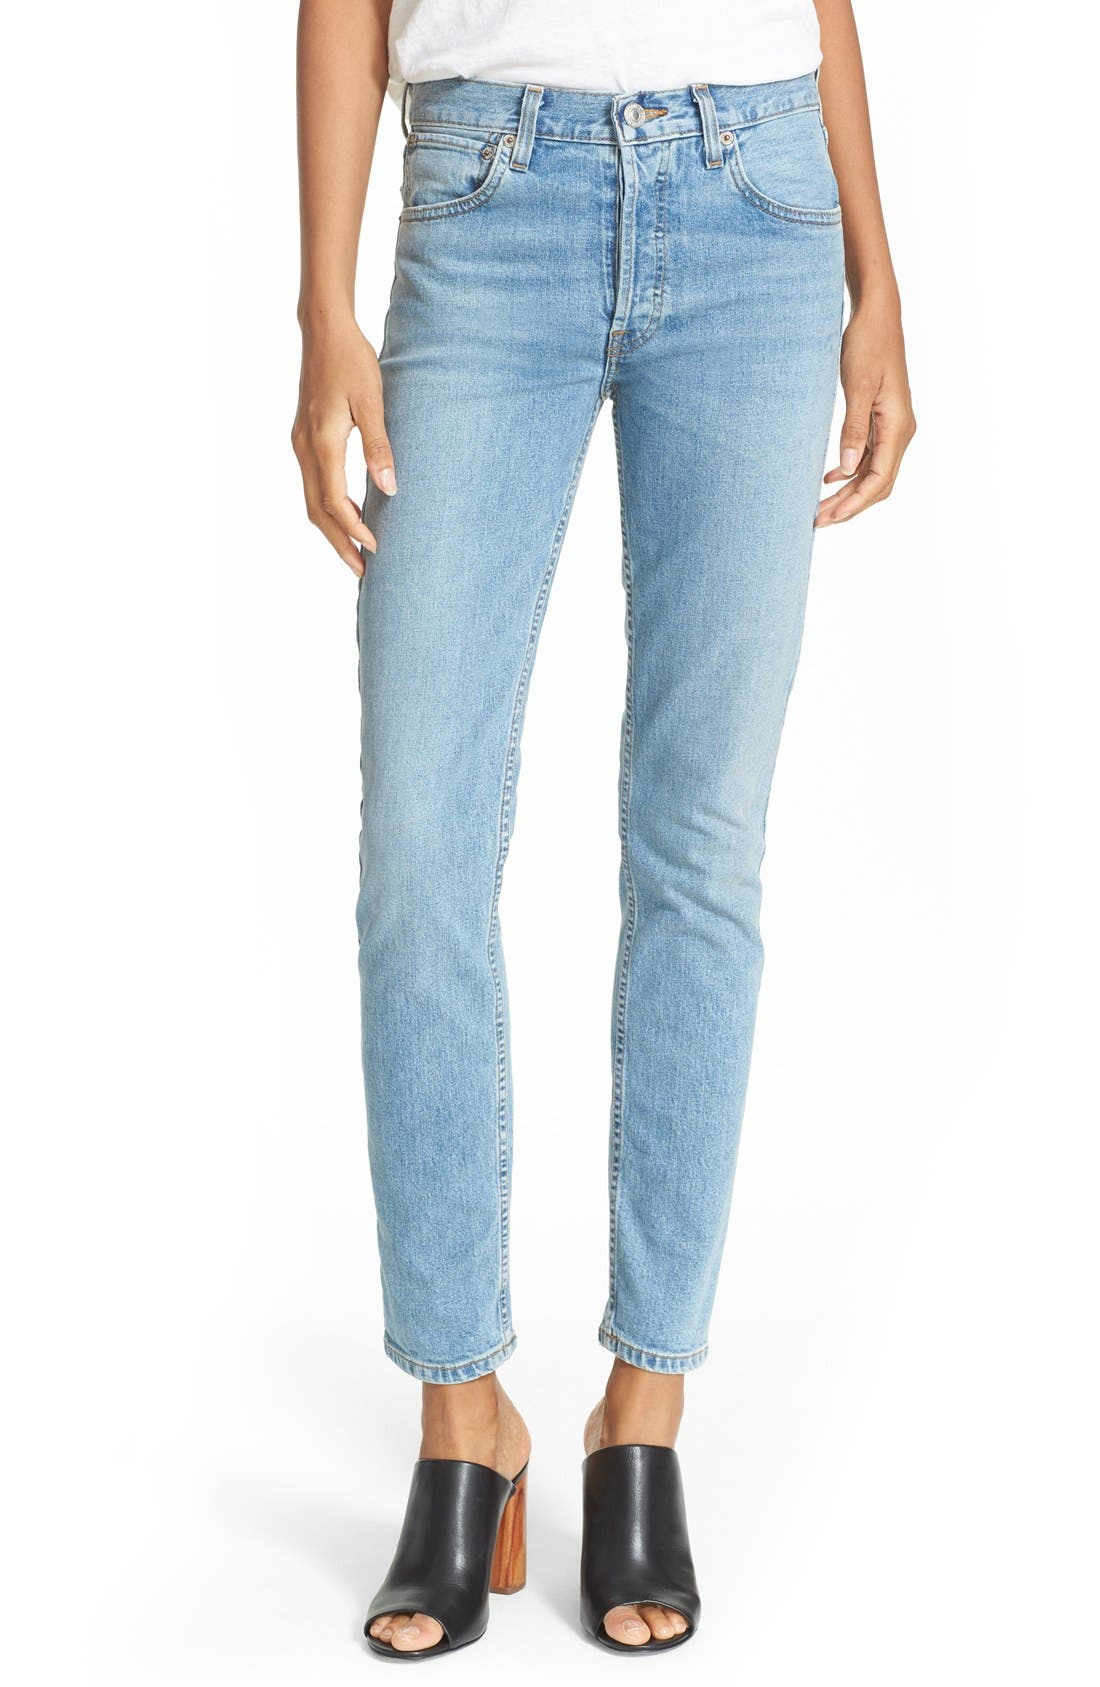 Main Image - Re/Done Originals High Waist Straight Skinny Stretch Jeans (Light)